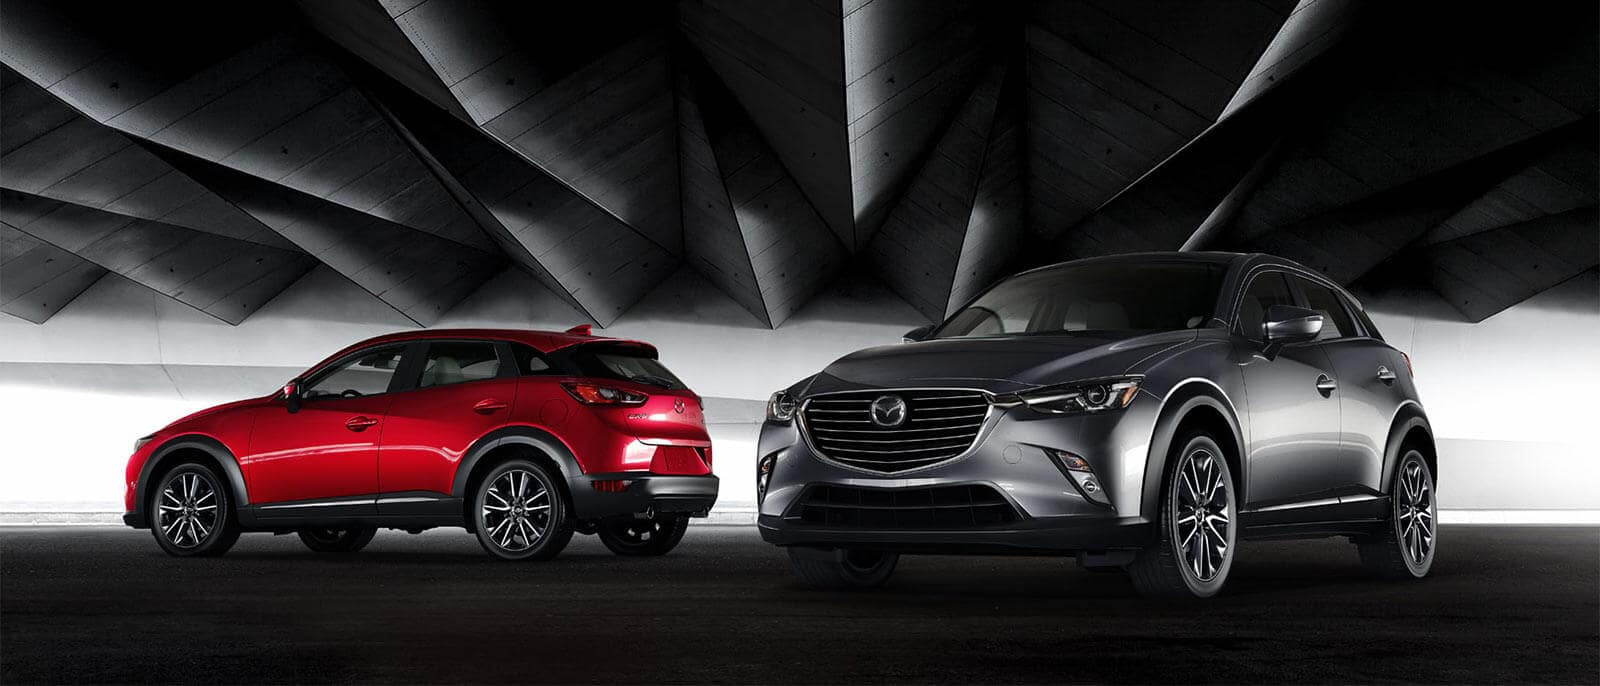 2018 Mazda CX-3 Two Vehicles